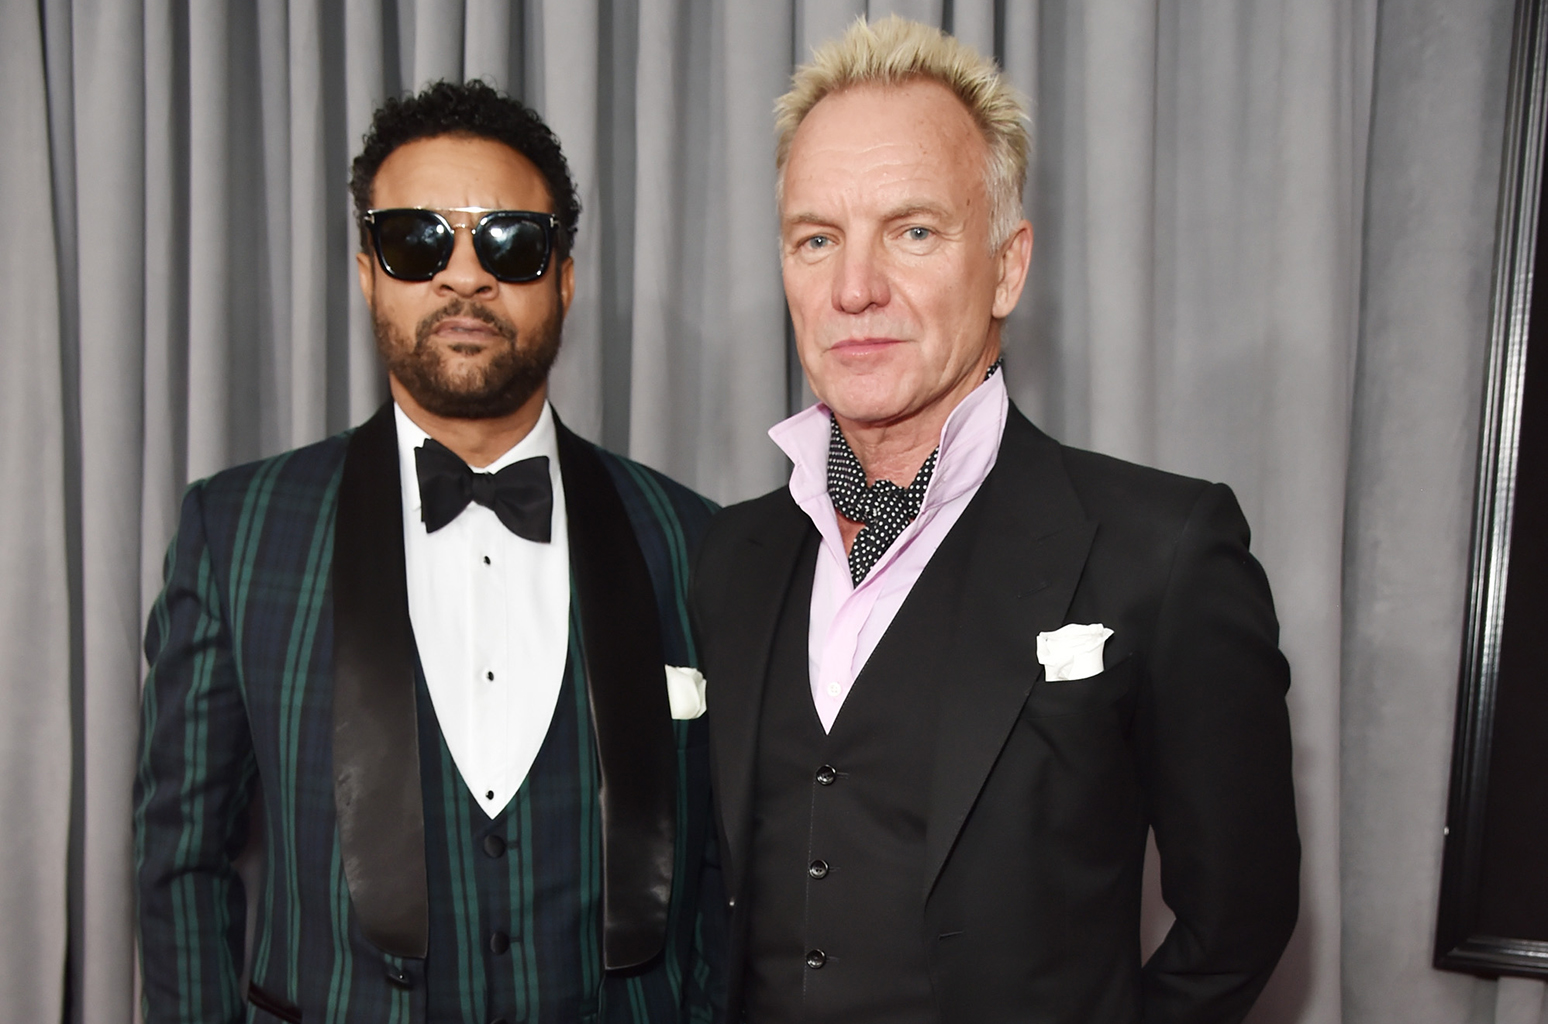 shaggy sting grammys red carpet 2018 billboard 1548 - Os looks do Grammys favoritos da nossa fashion editor